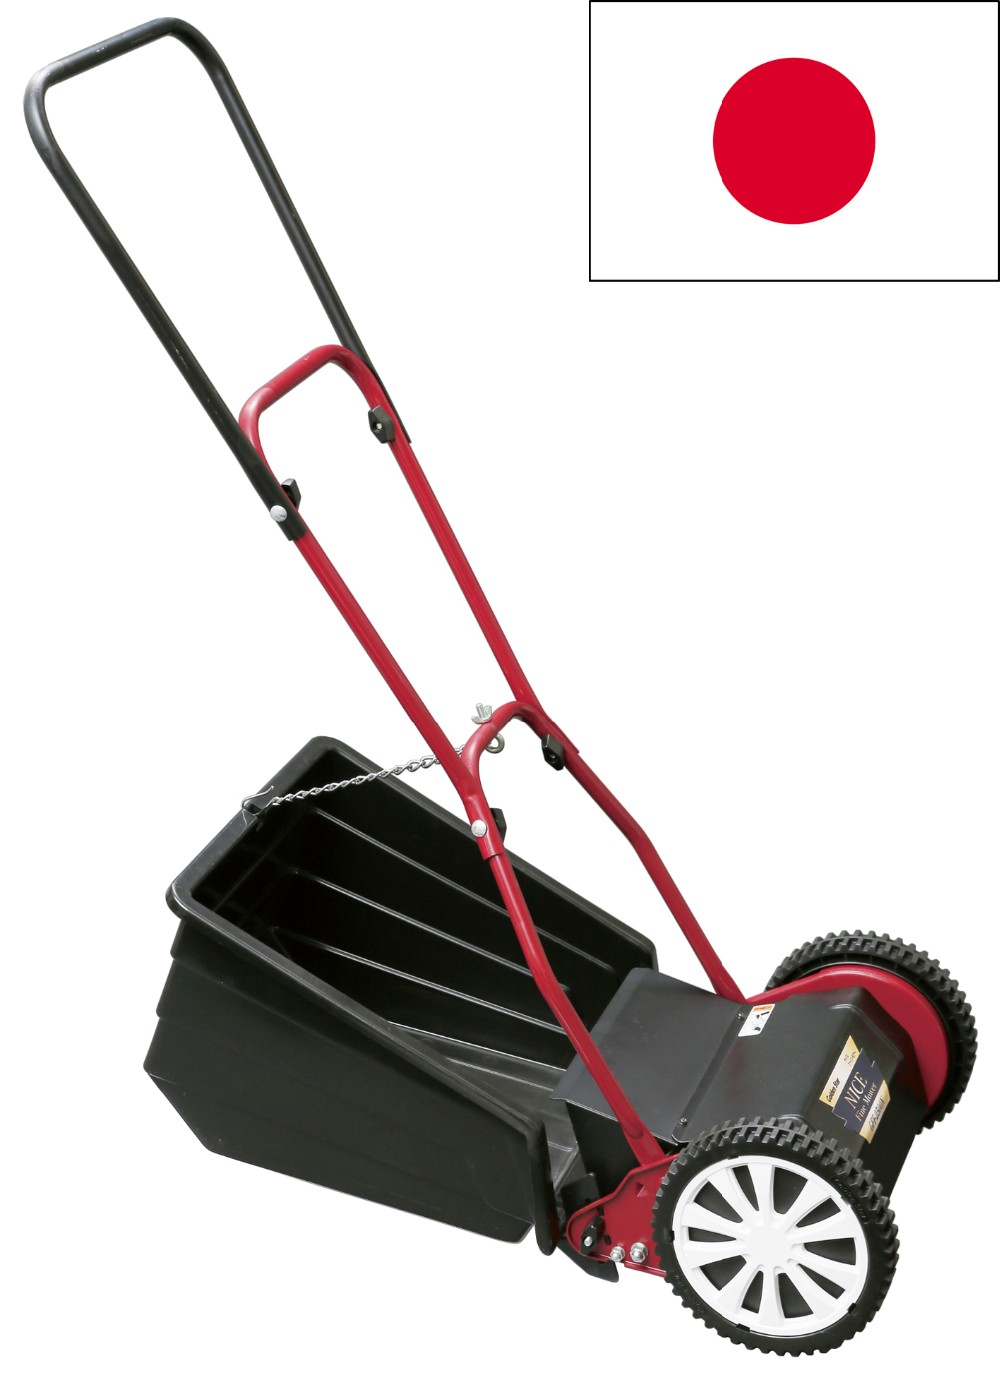 Professional and Reliable hand push manual lawn mower with multiple functions made in Japan